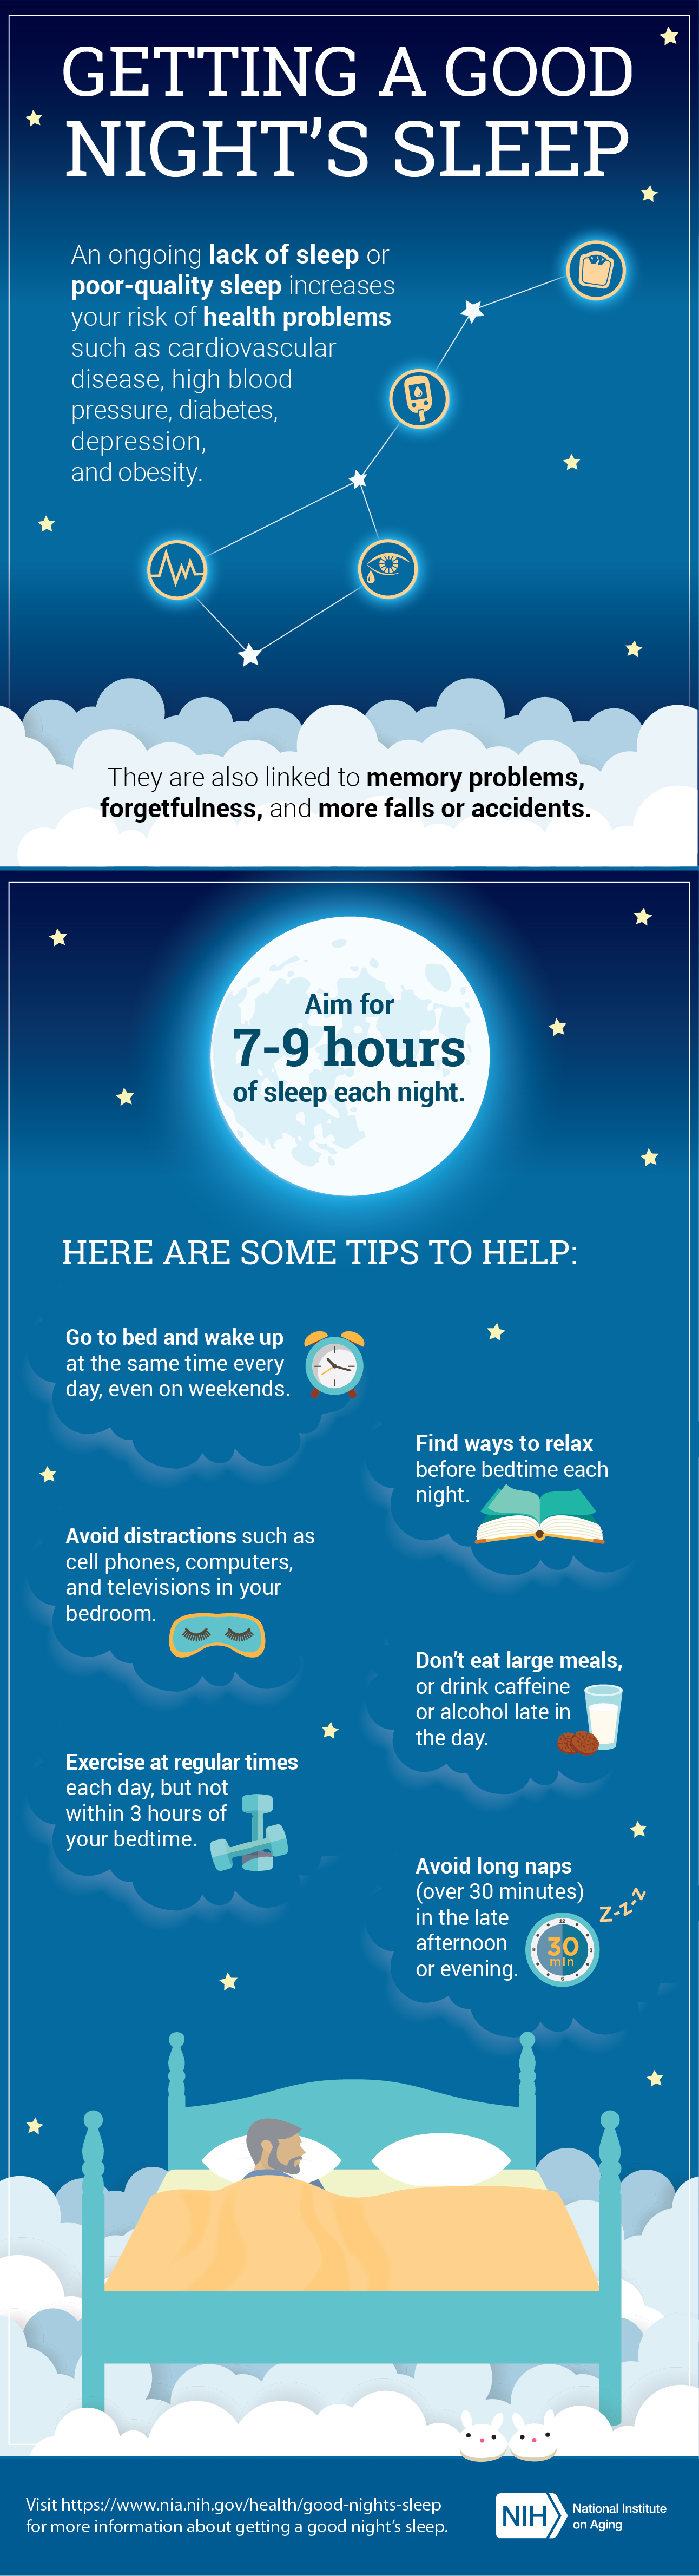 Getting a Good Night's Sleep infographic. Full transcript below.